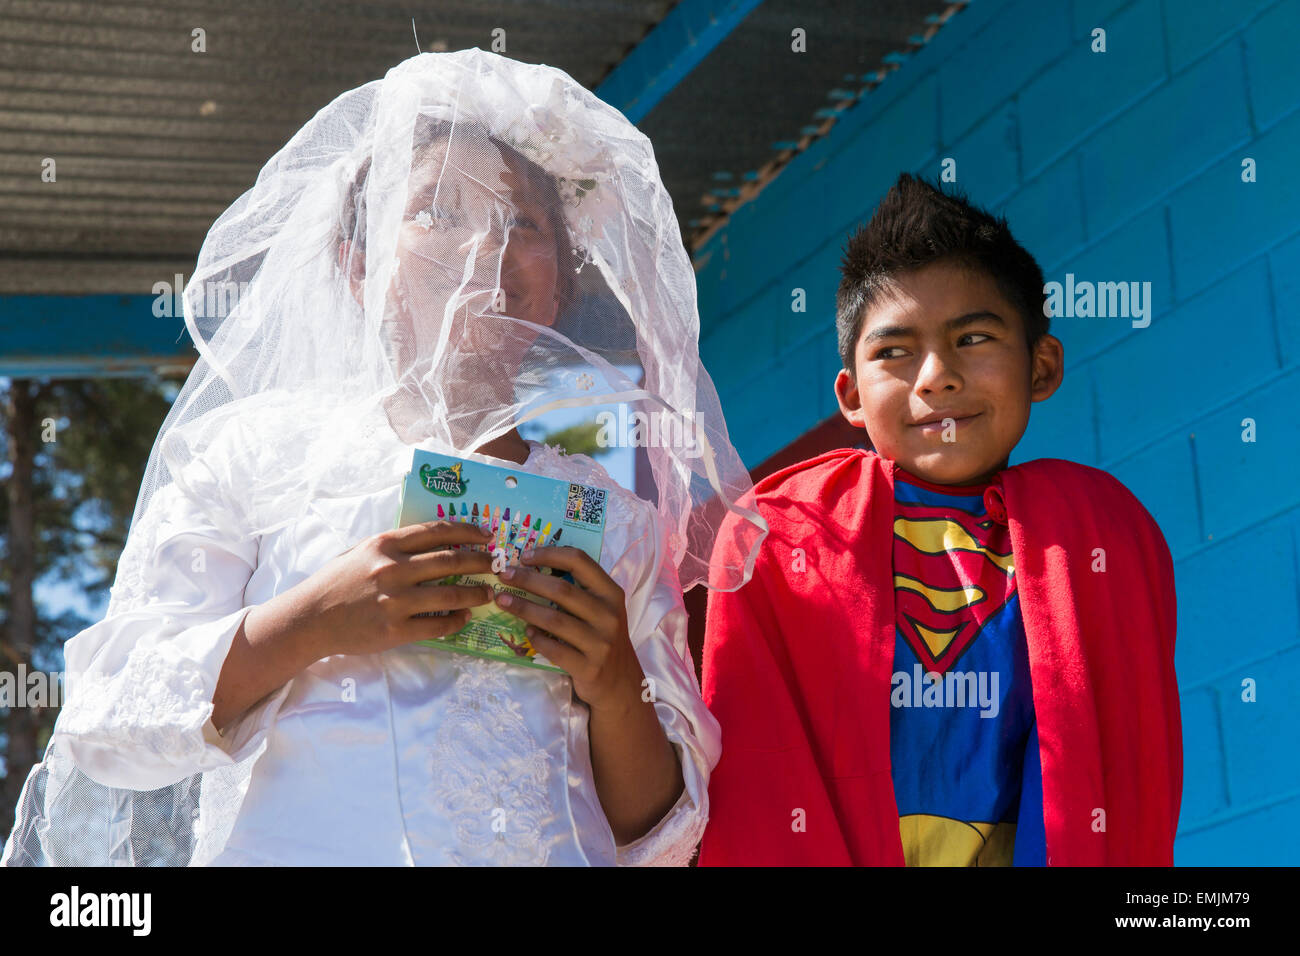 Guatemala,Jalapa, two school children dressed in costume for Carnival - Stock Image